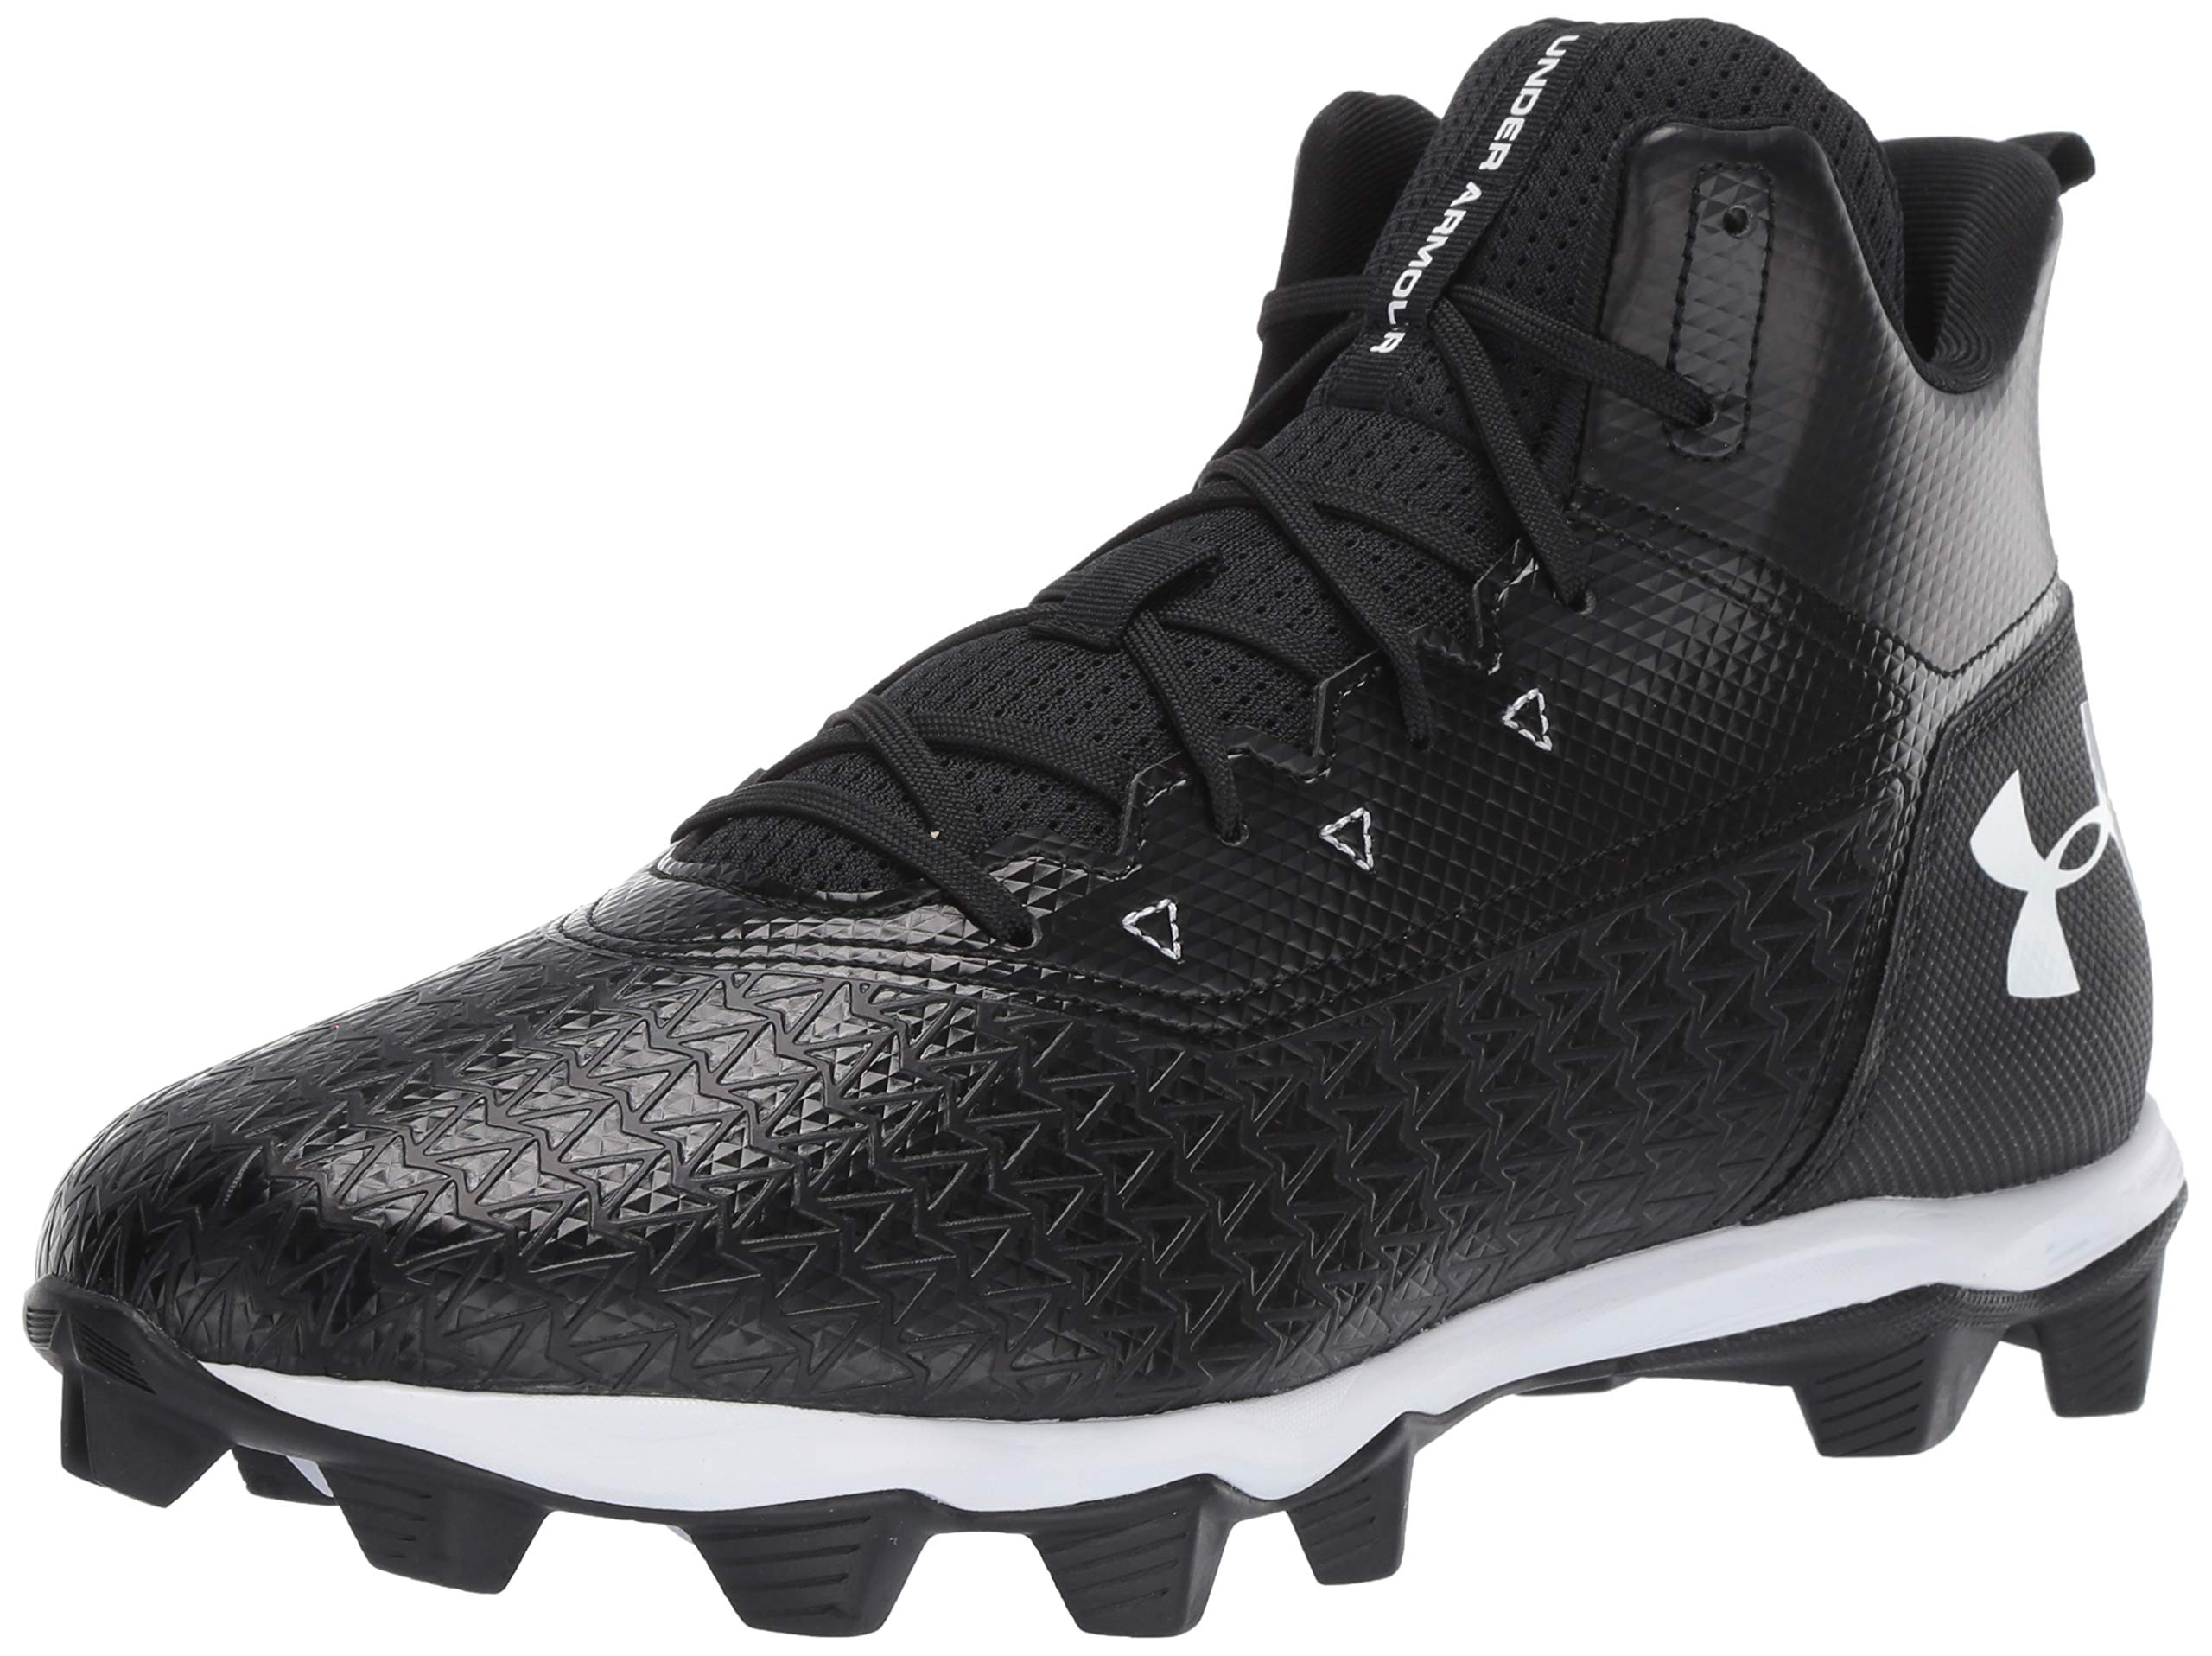 Under Armour Men's Hammer Mid RM Wide Football Shoe, Black (001)/White, 11 W US by Under Armour